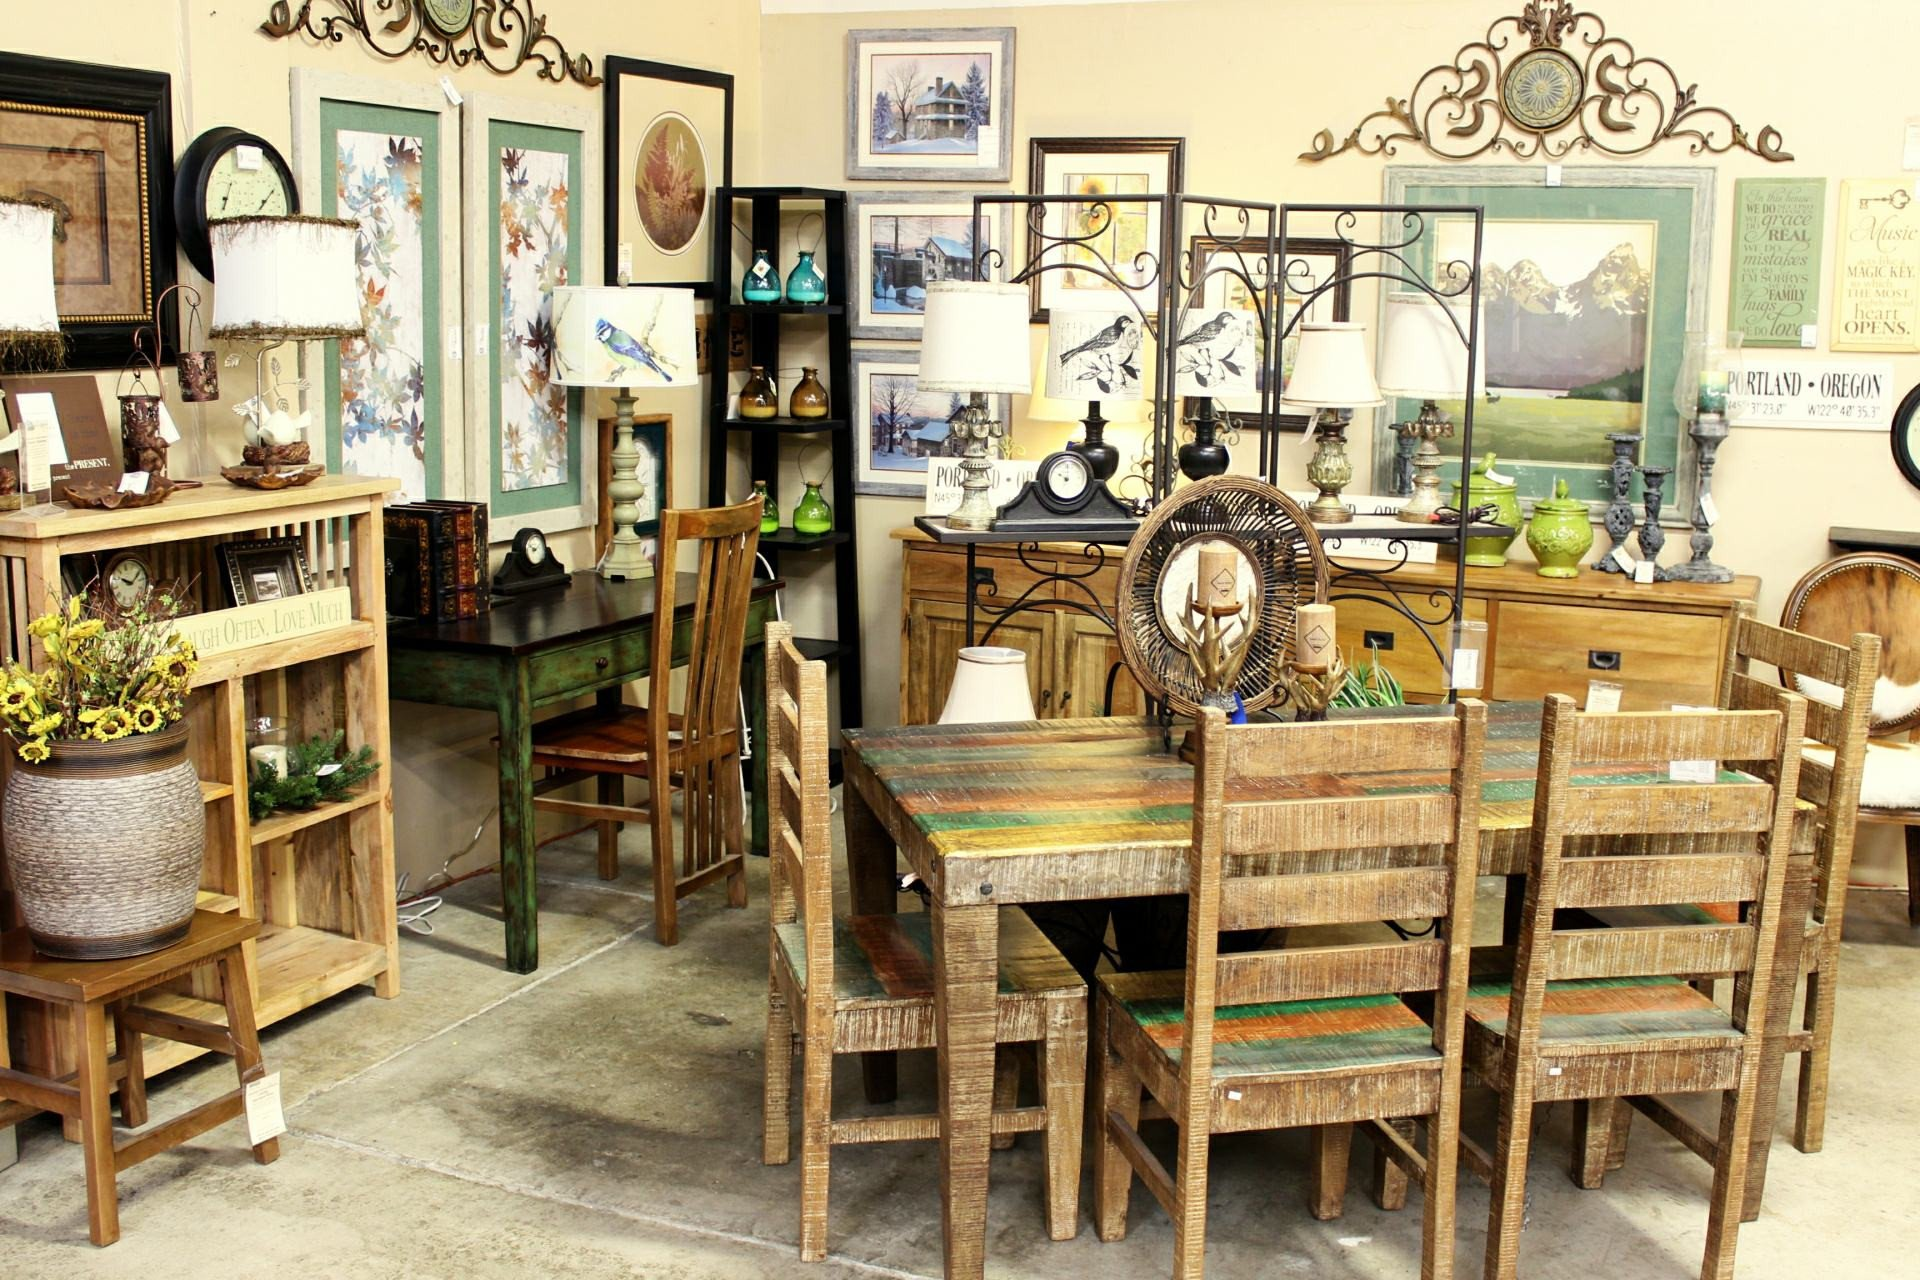 Upscale Consignment Furniture and Decor Lovely Upscale Consignment Furniture & Decor In Gladstone or